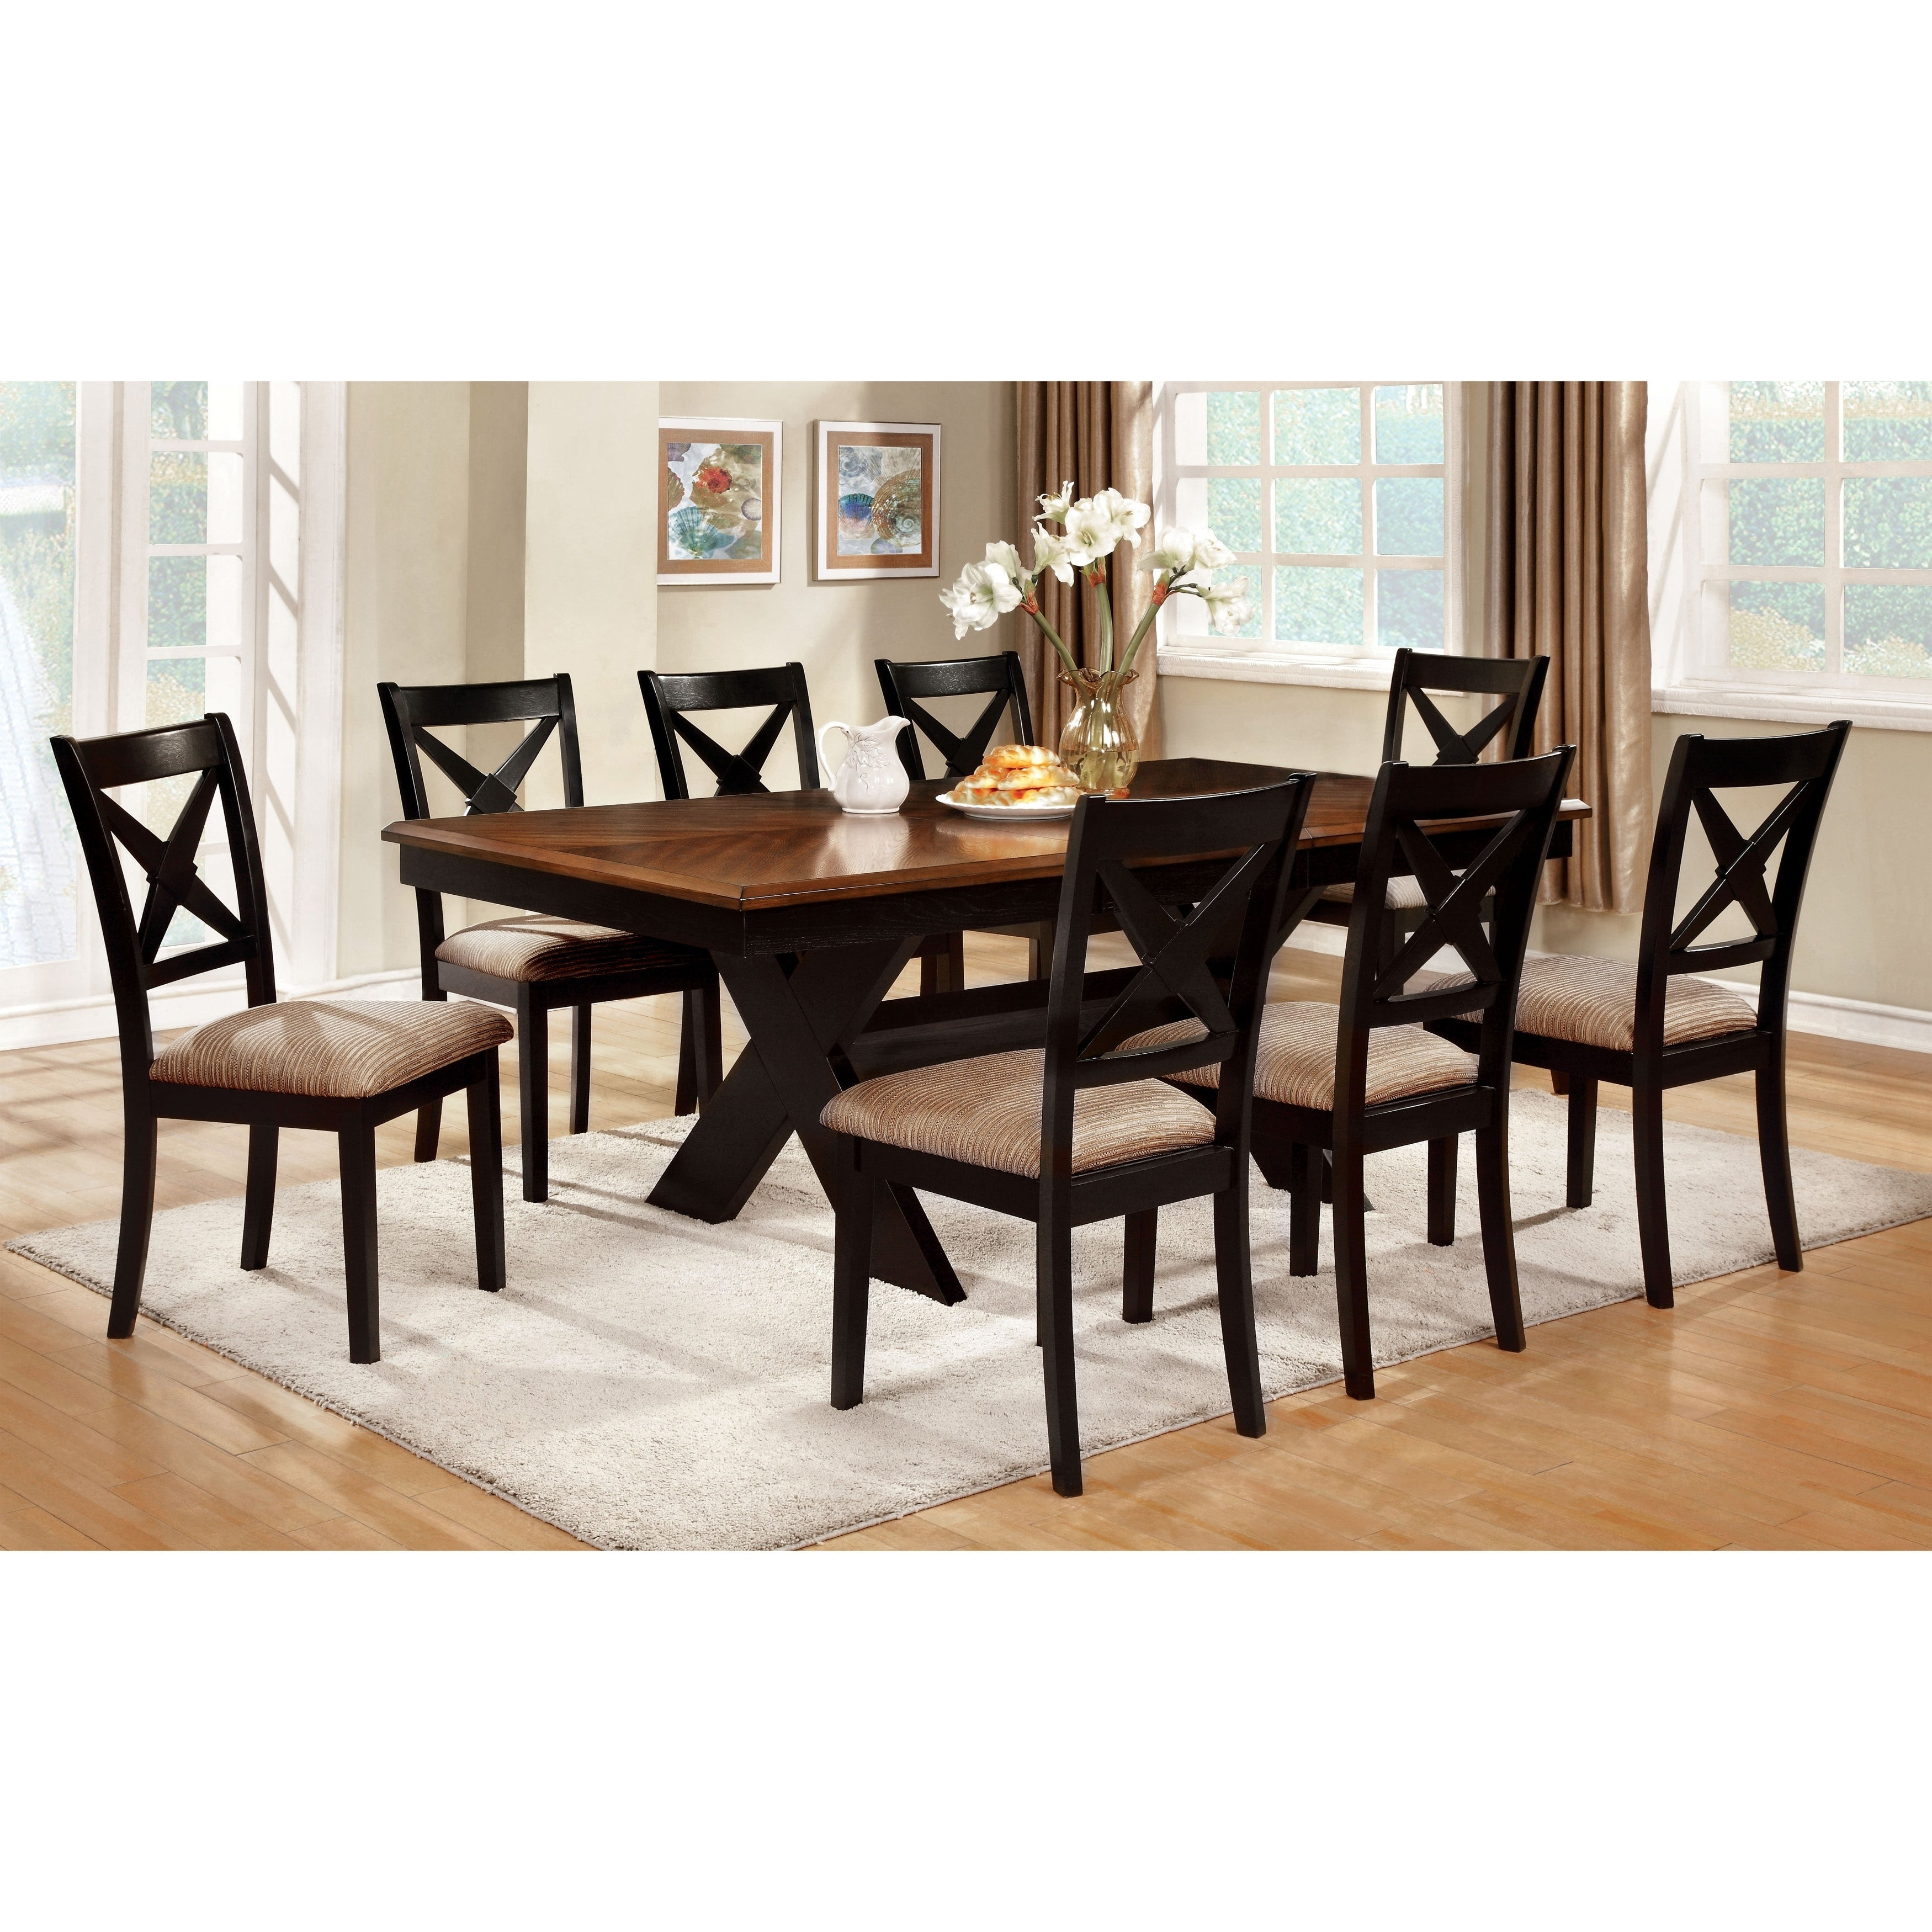 Furniture of America Berthetta 9-Piece Dining Set with Le...